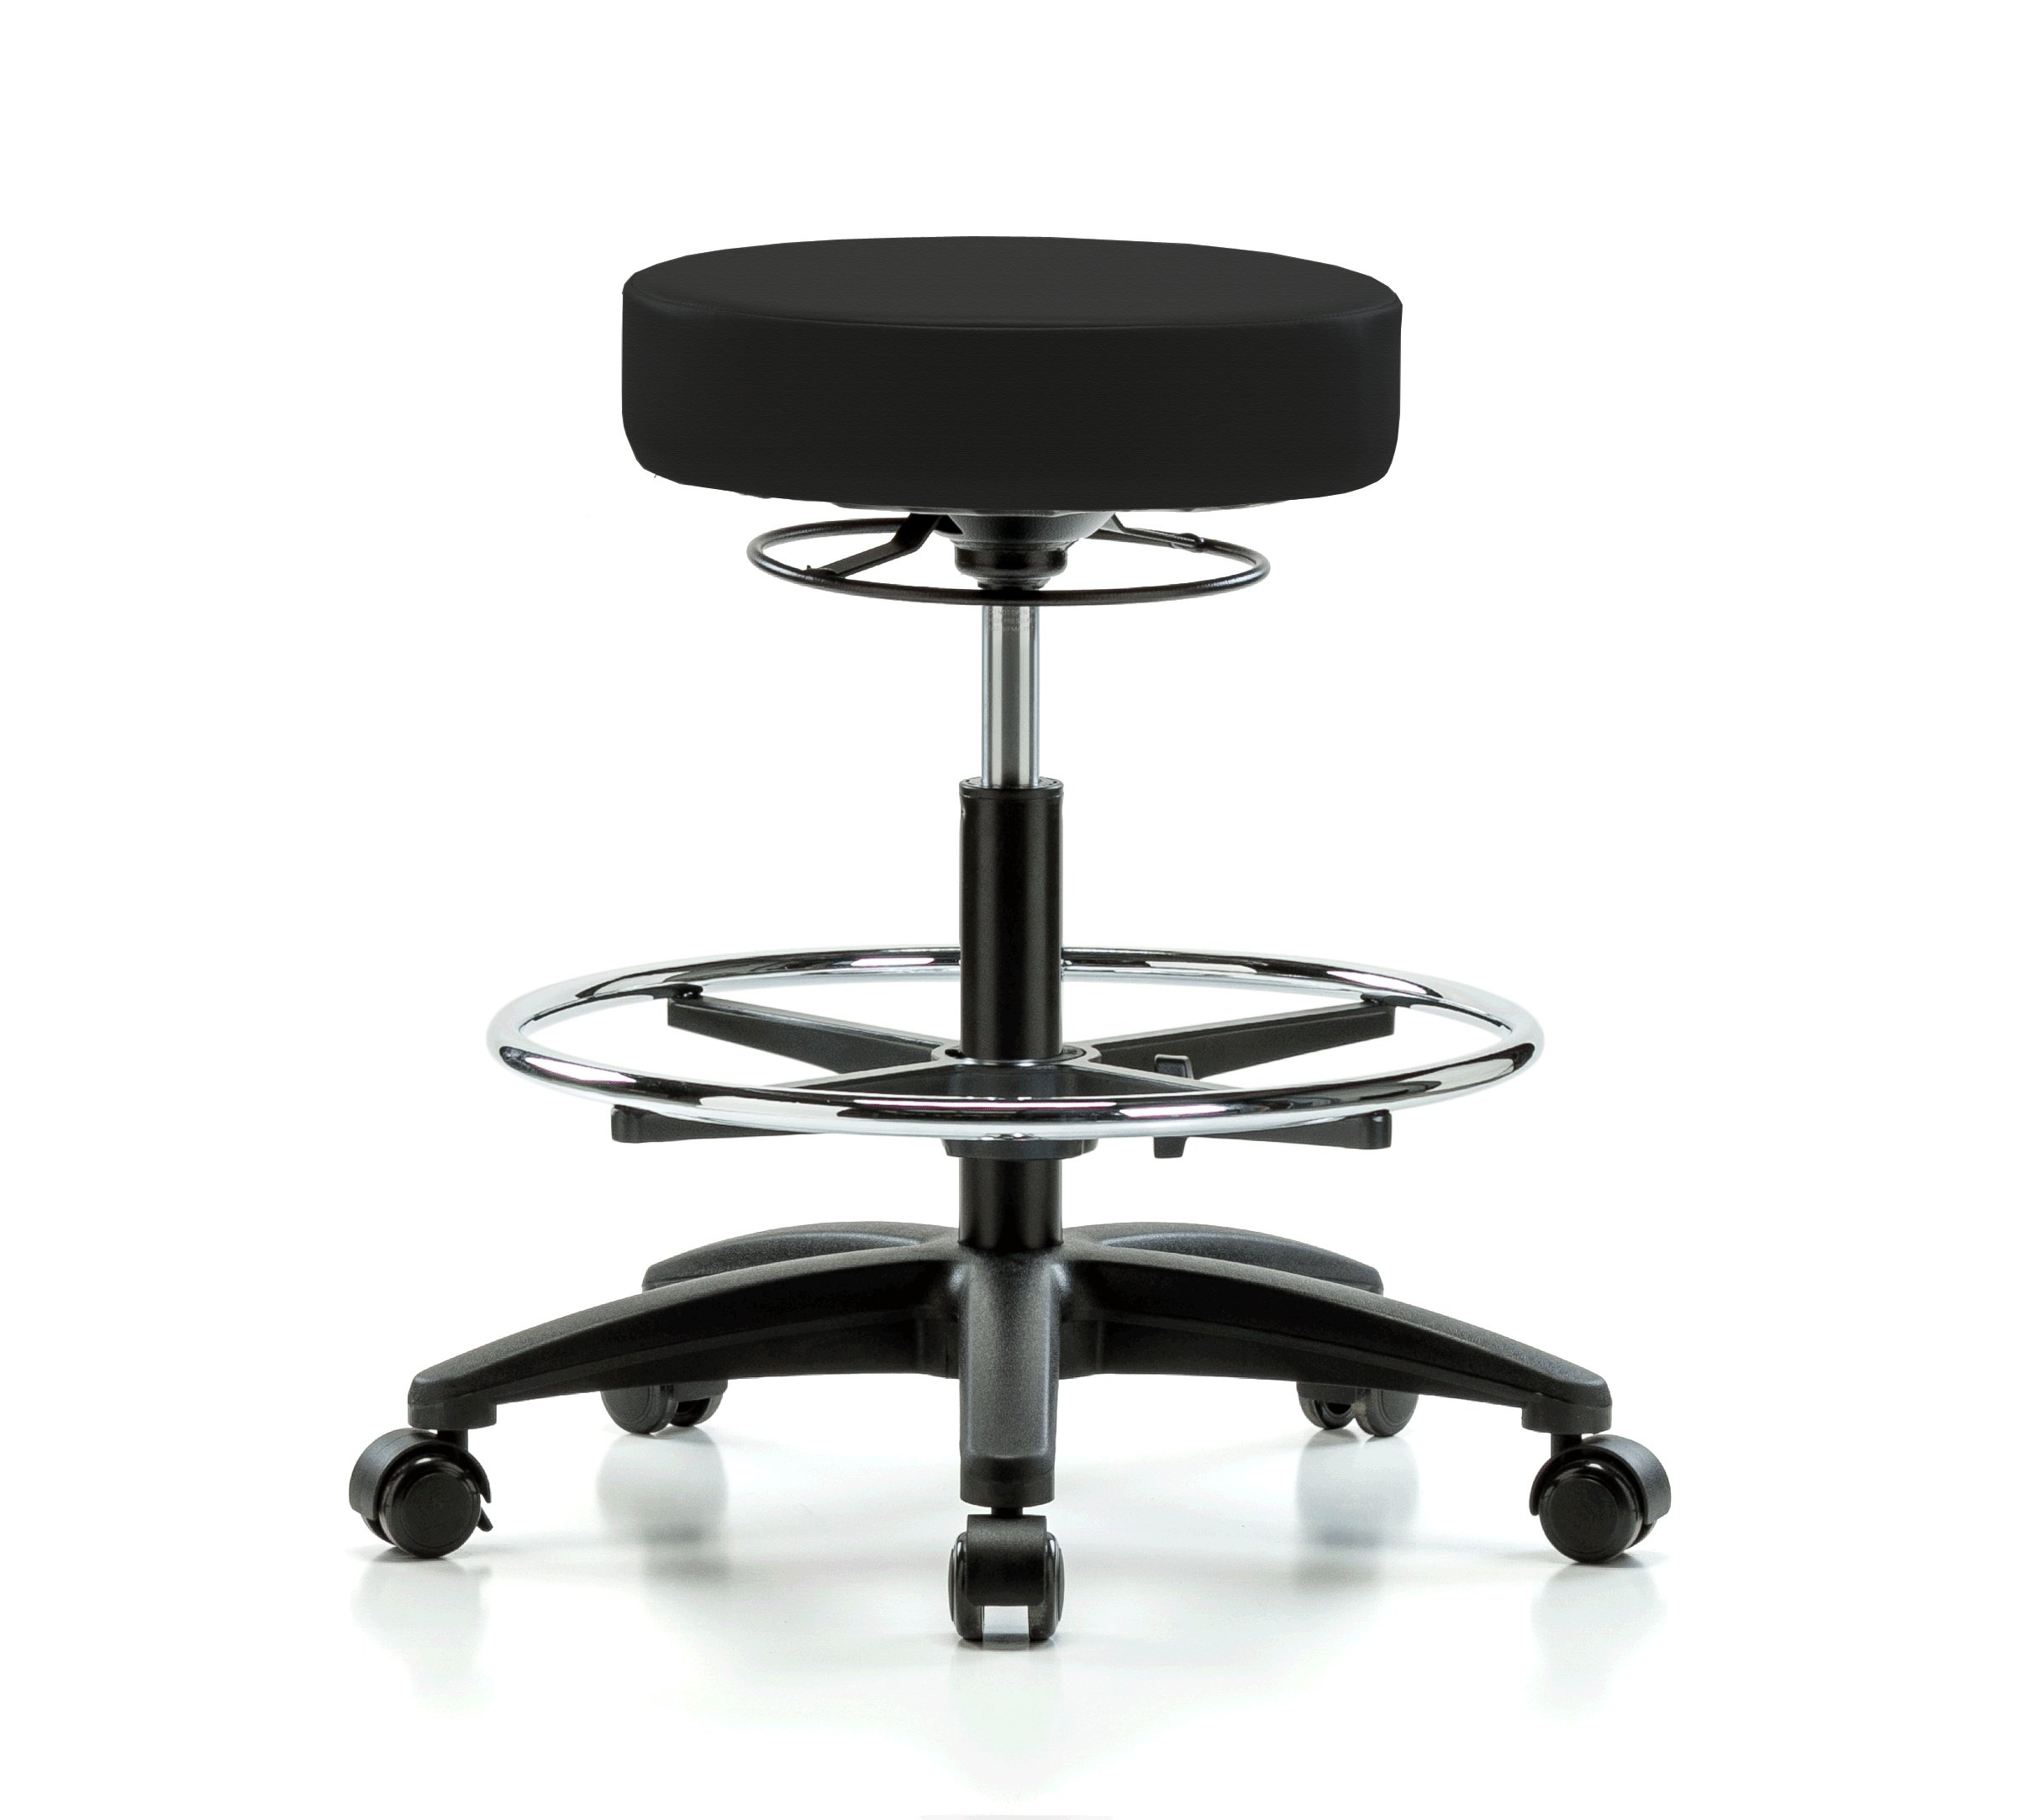 Perch Life Rolling Height Adjustable Stool with Foot Ring for Carpet or Linoleum, Workbench Height, Black Fabric